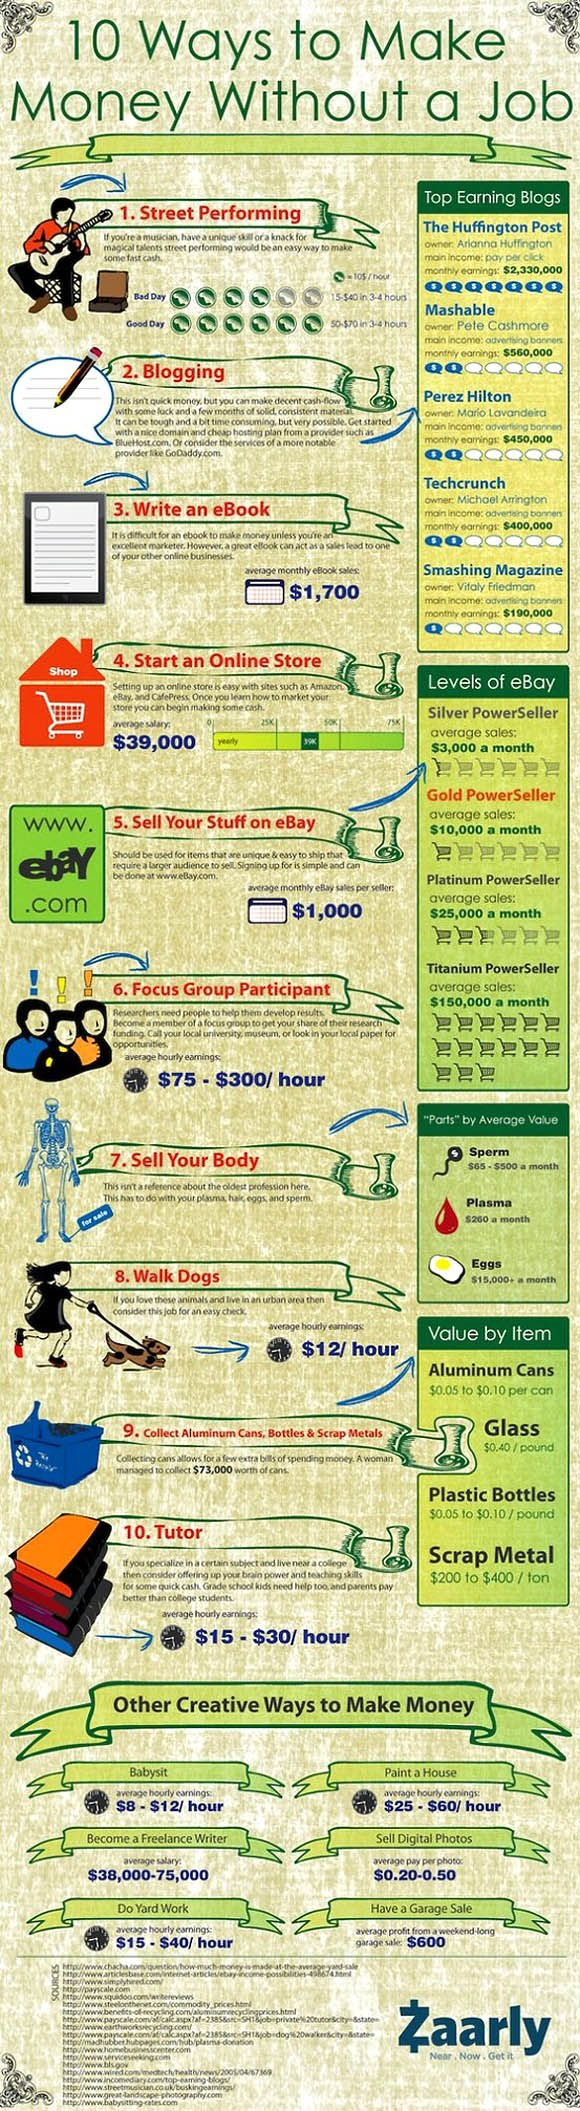 10-ways-to-make-money-without-a-job.jpg (580×2111)